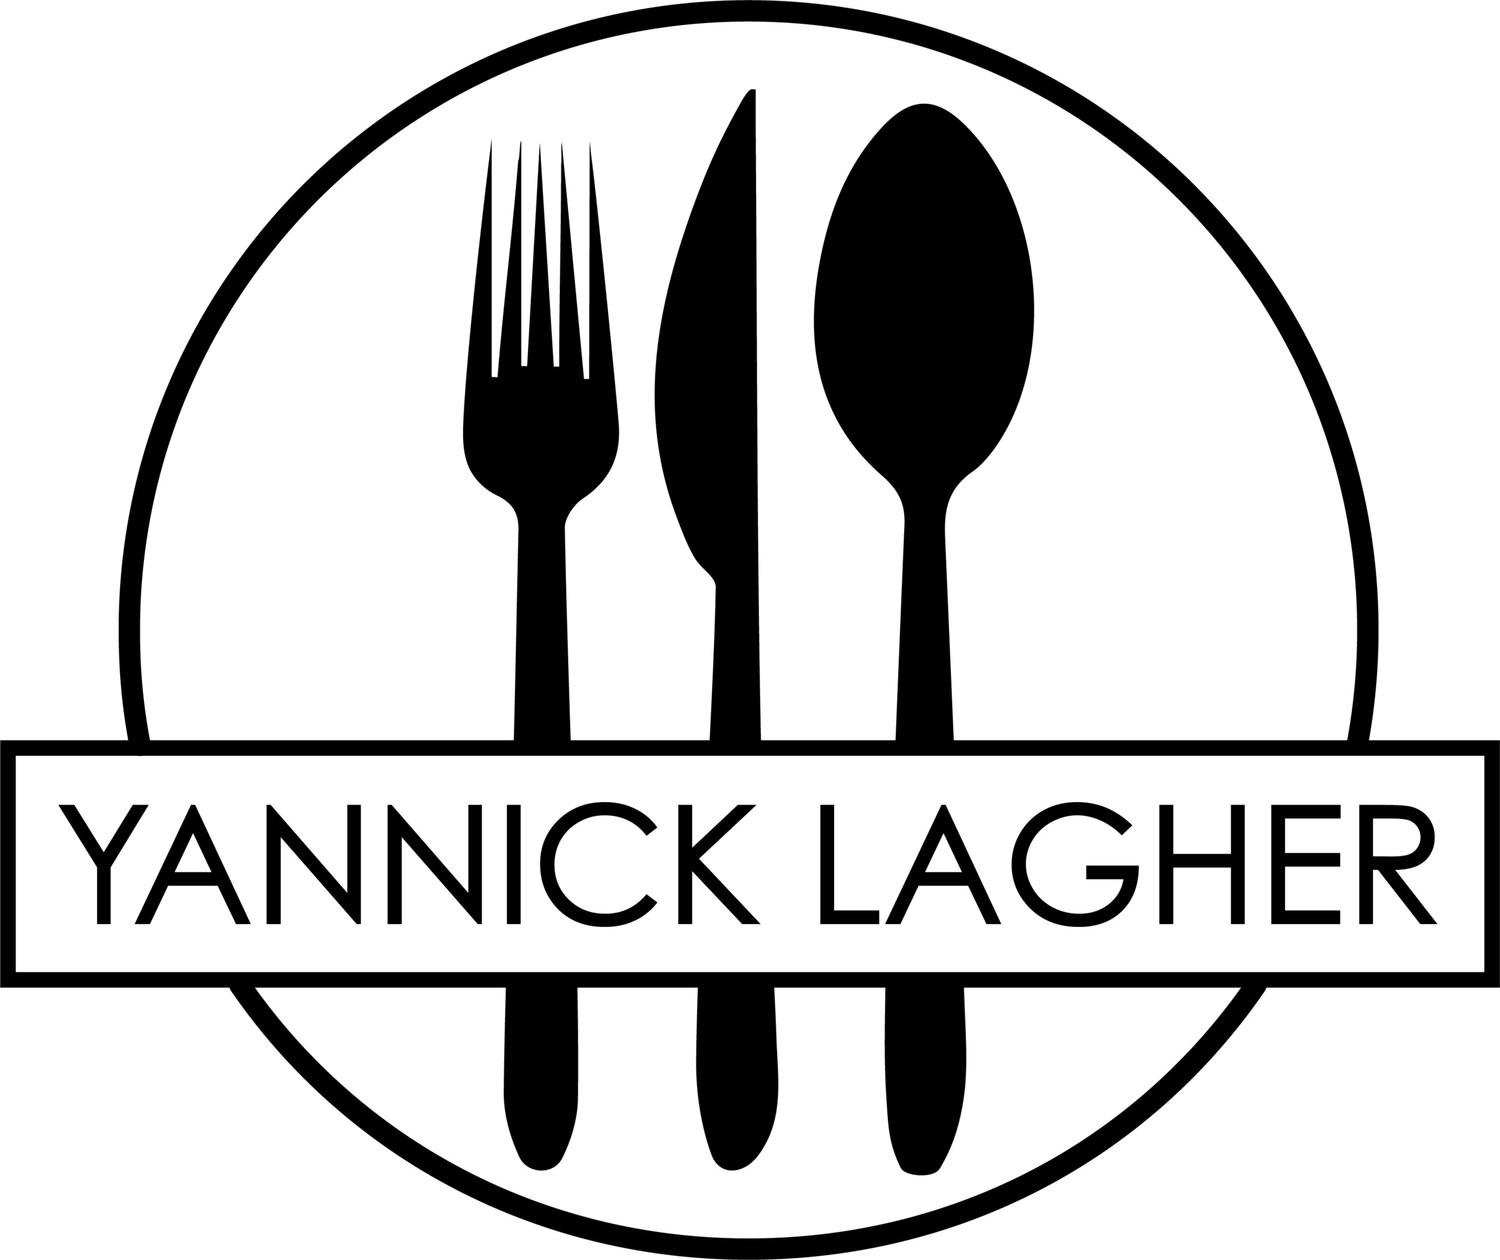 Yannick Lagher - Food & Beverage Entrepreneur